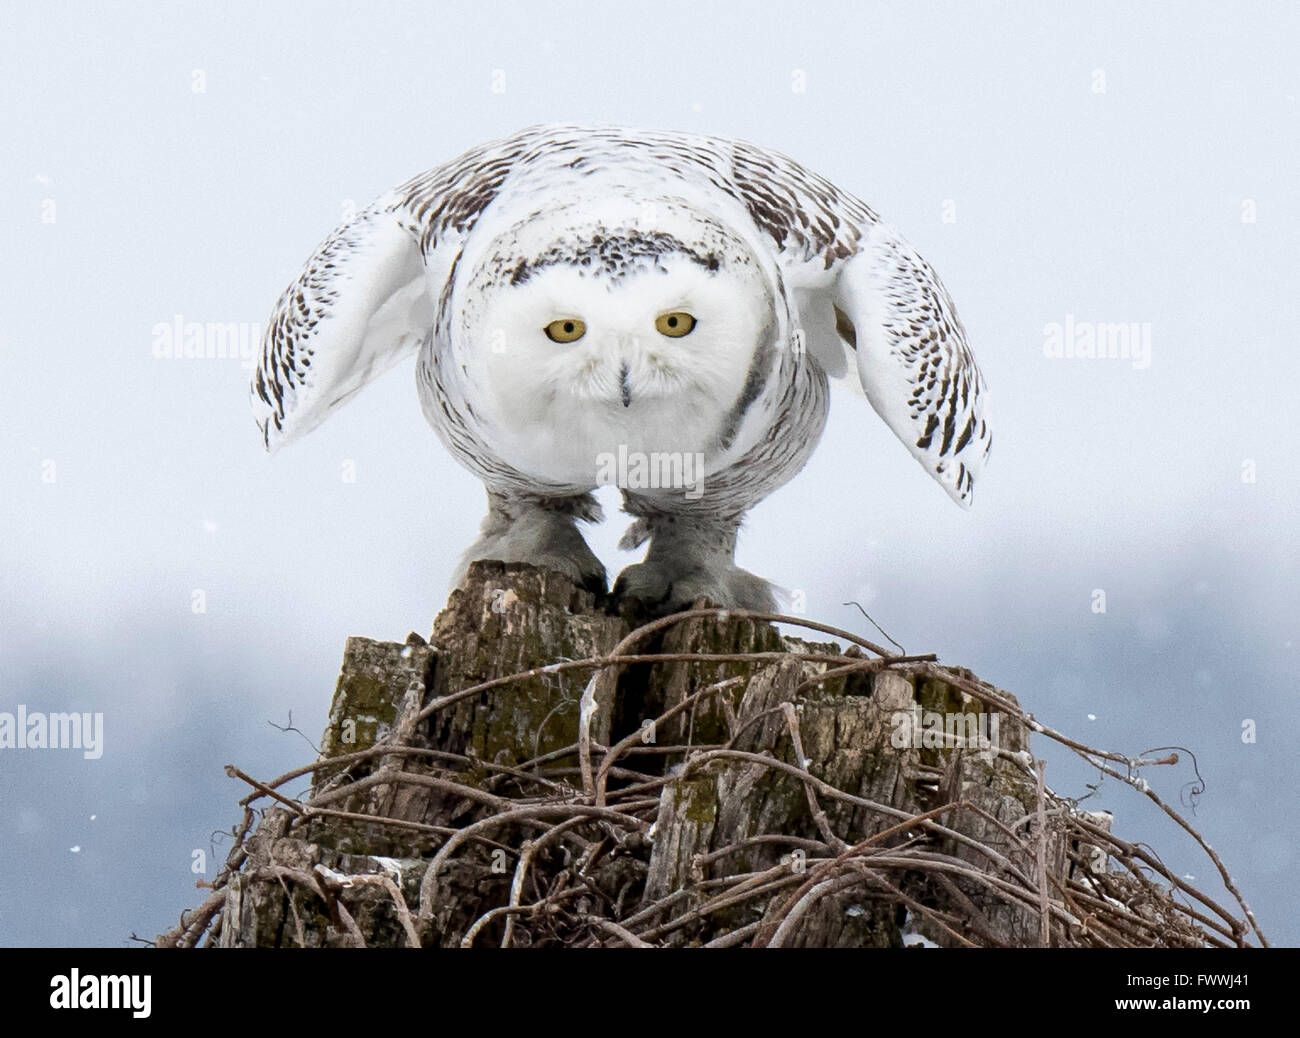 Snowy Owl taking off from tree stump - Stock Image